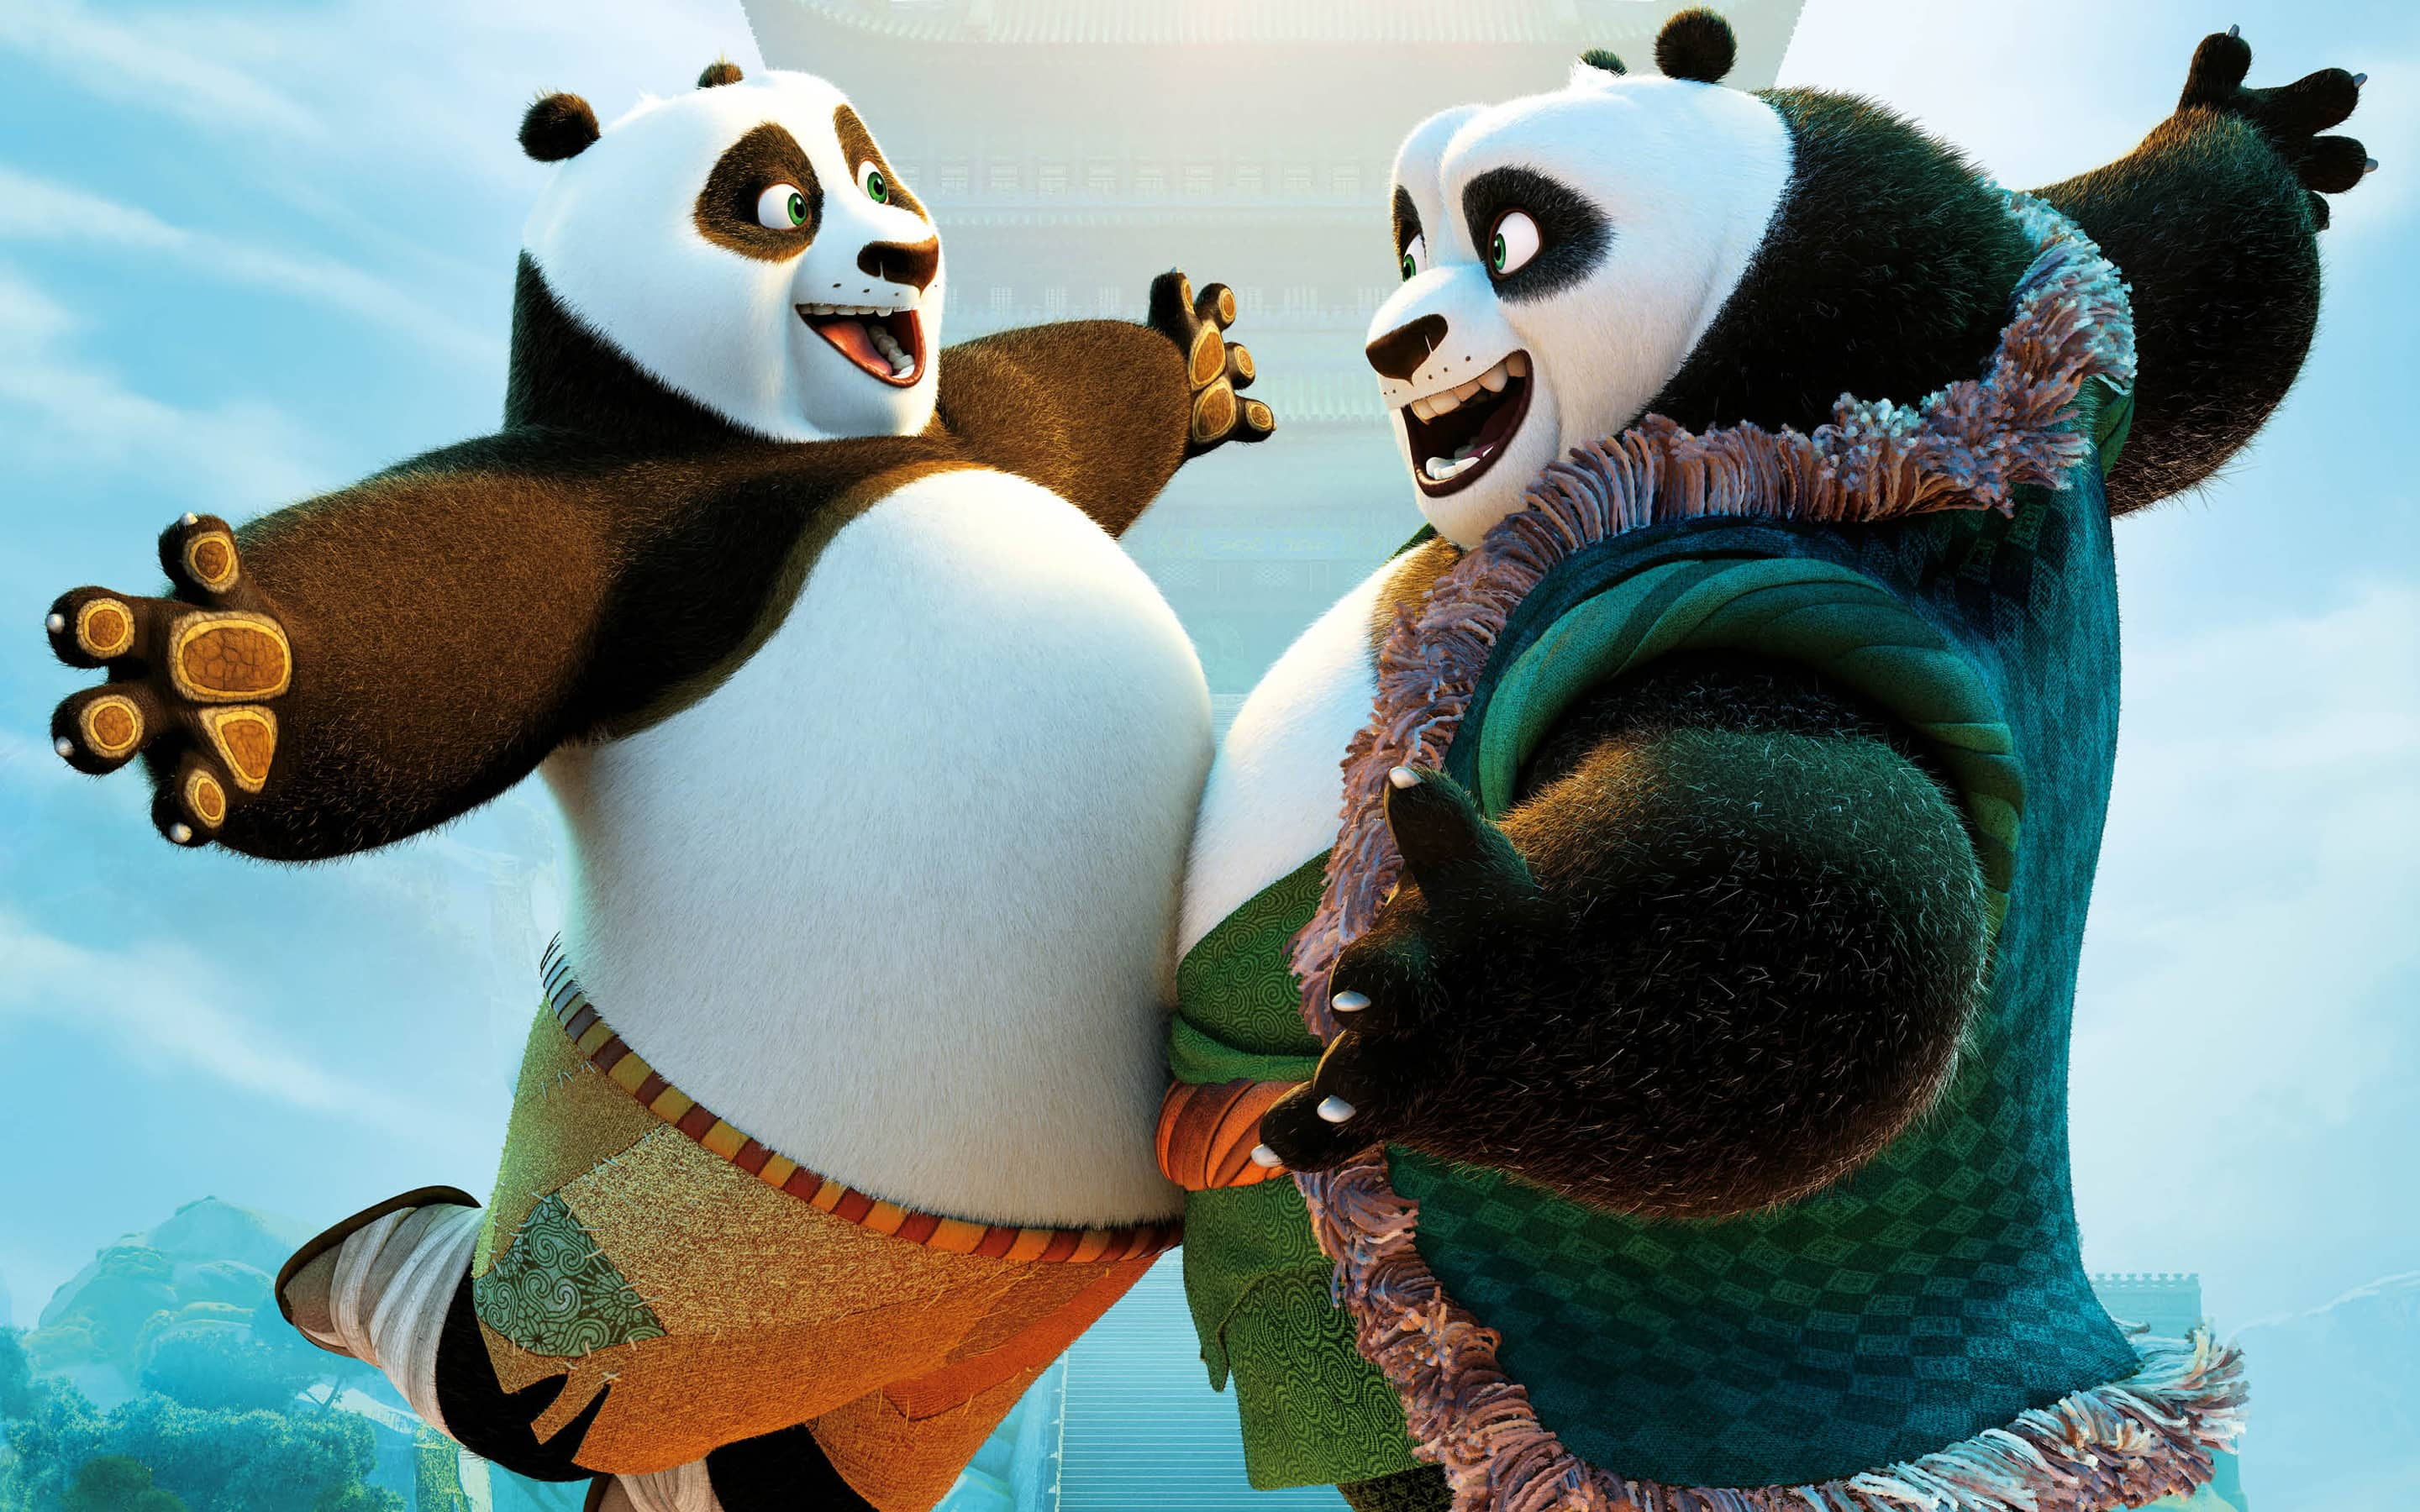 Goodbye, Shrek 4D; hello, Kung Fu Panda